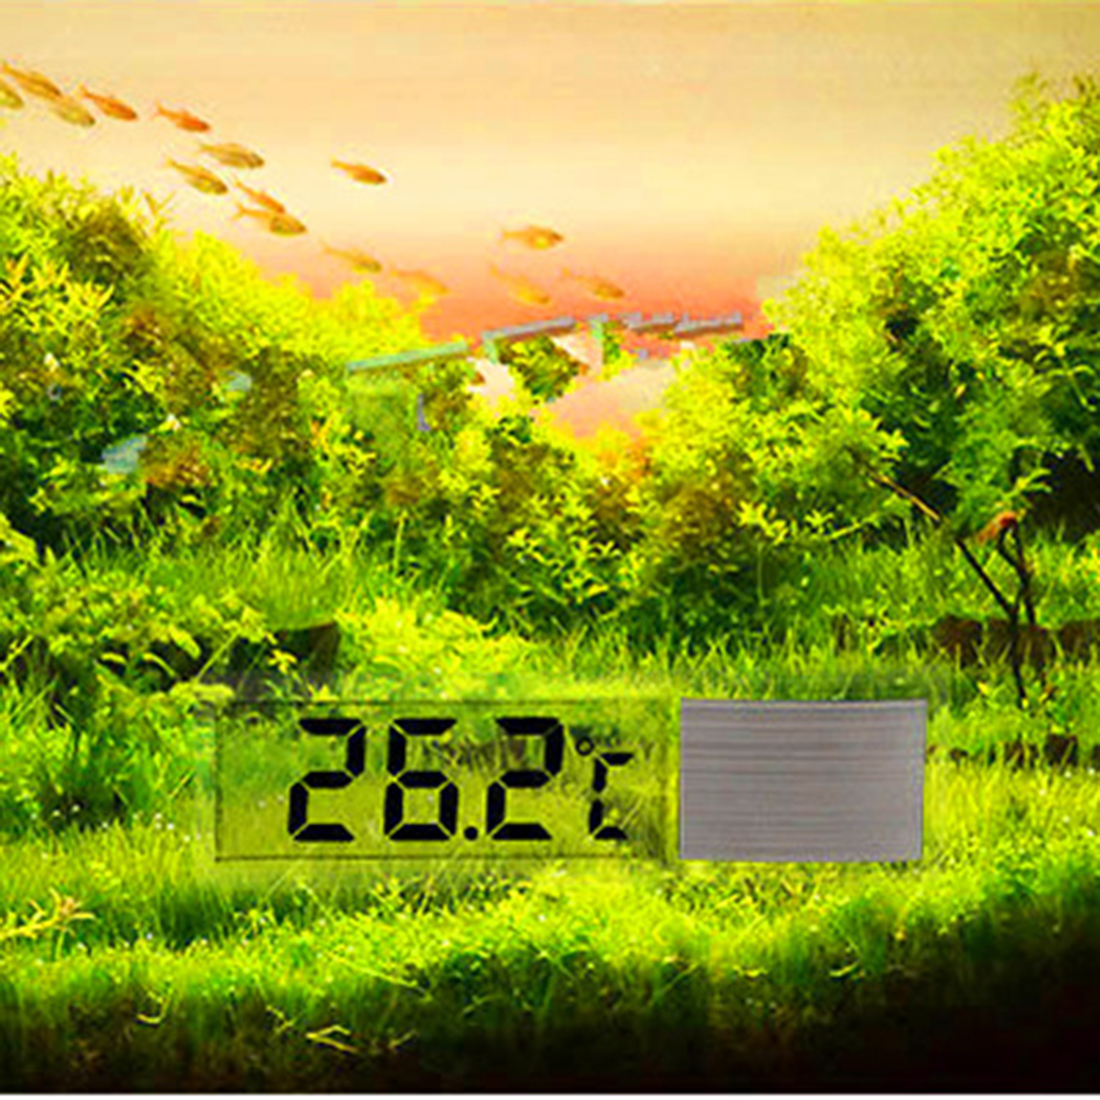 LCD 3D Crystal Digital Electronic Temperature Measurement Fish Tank Aquarium Thermometer Temperature Control Accessories